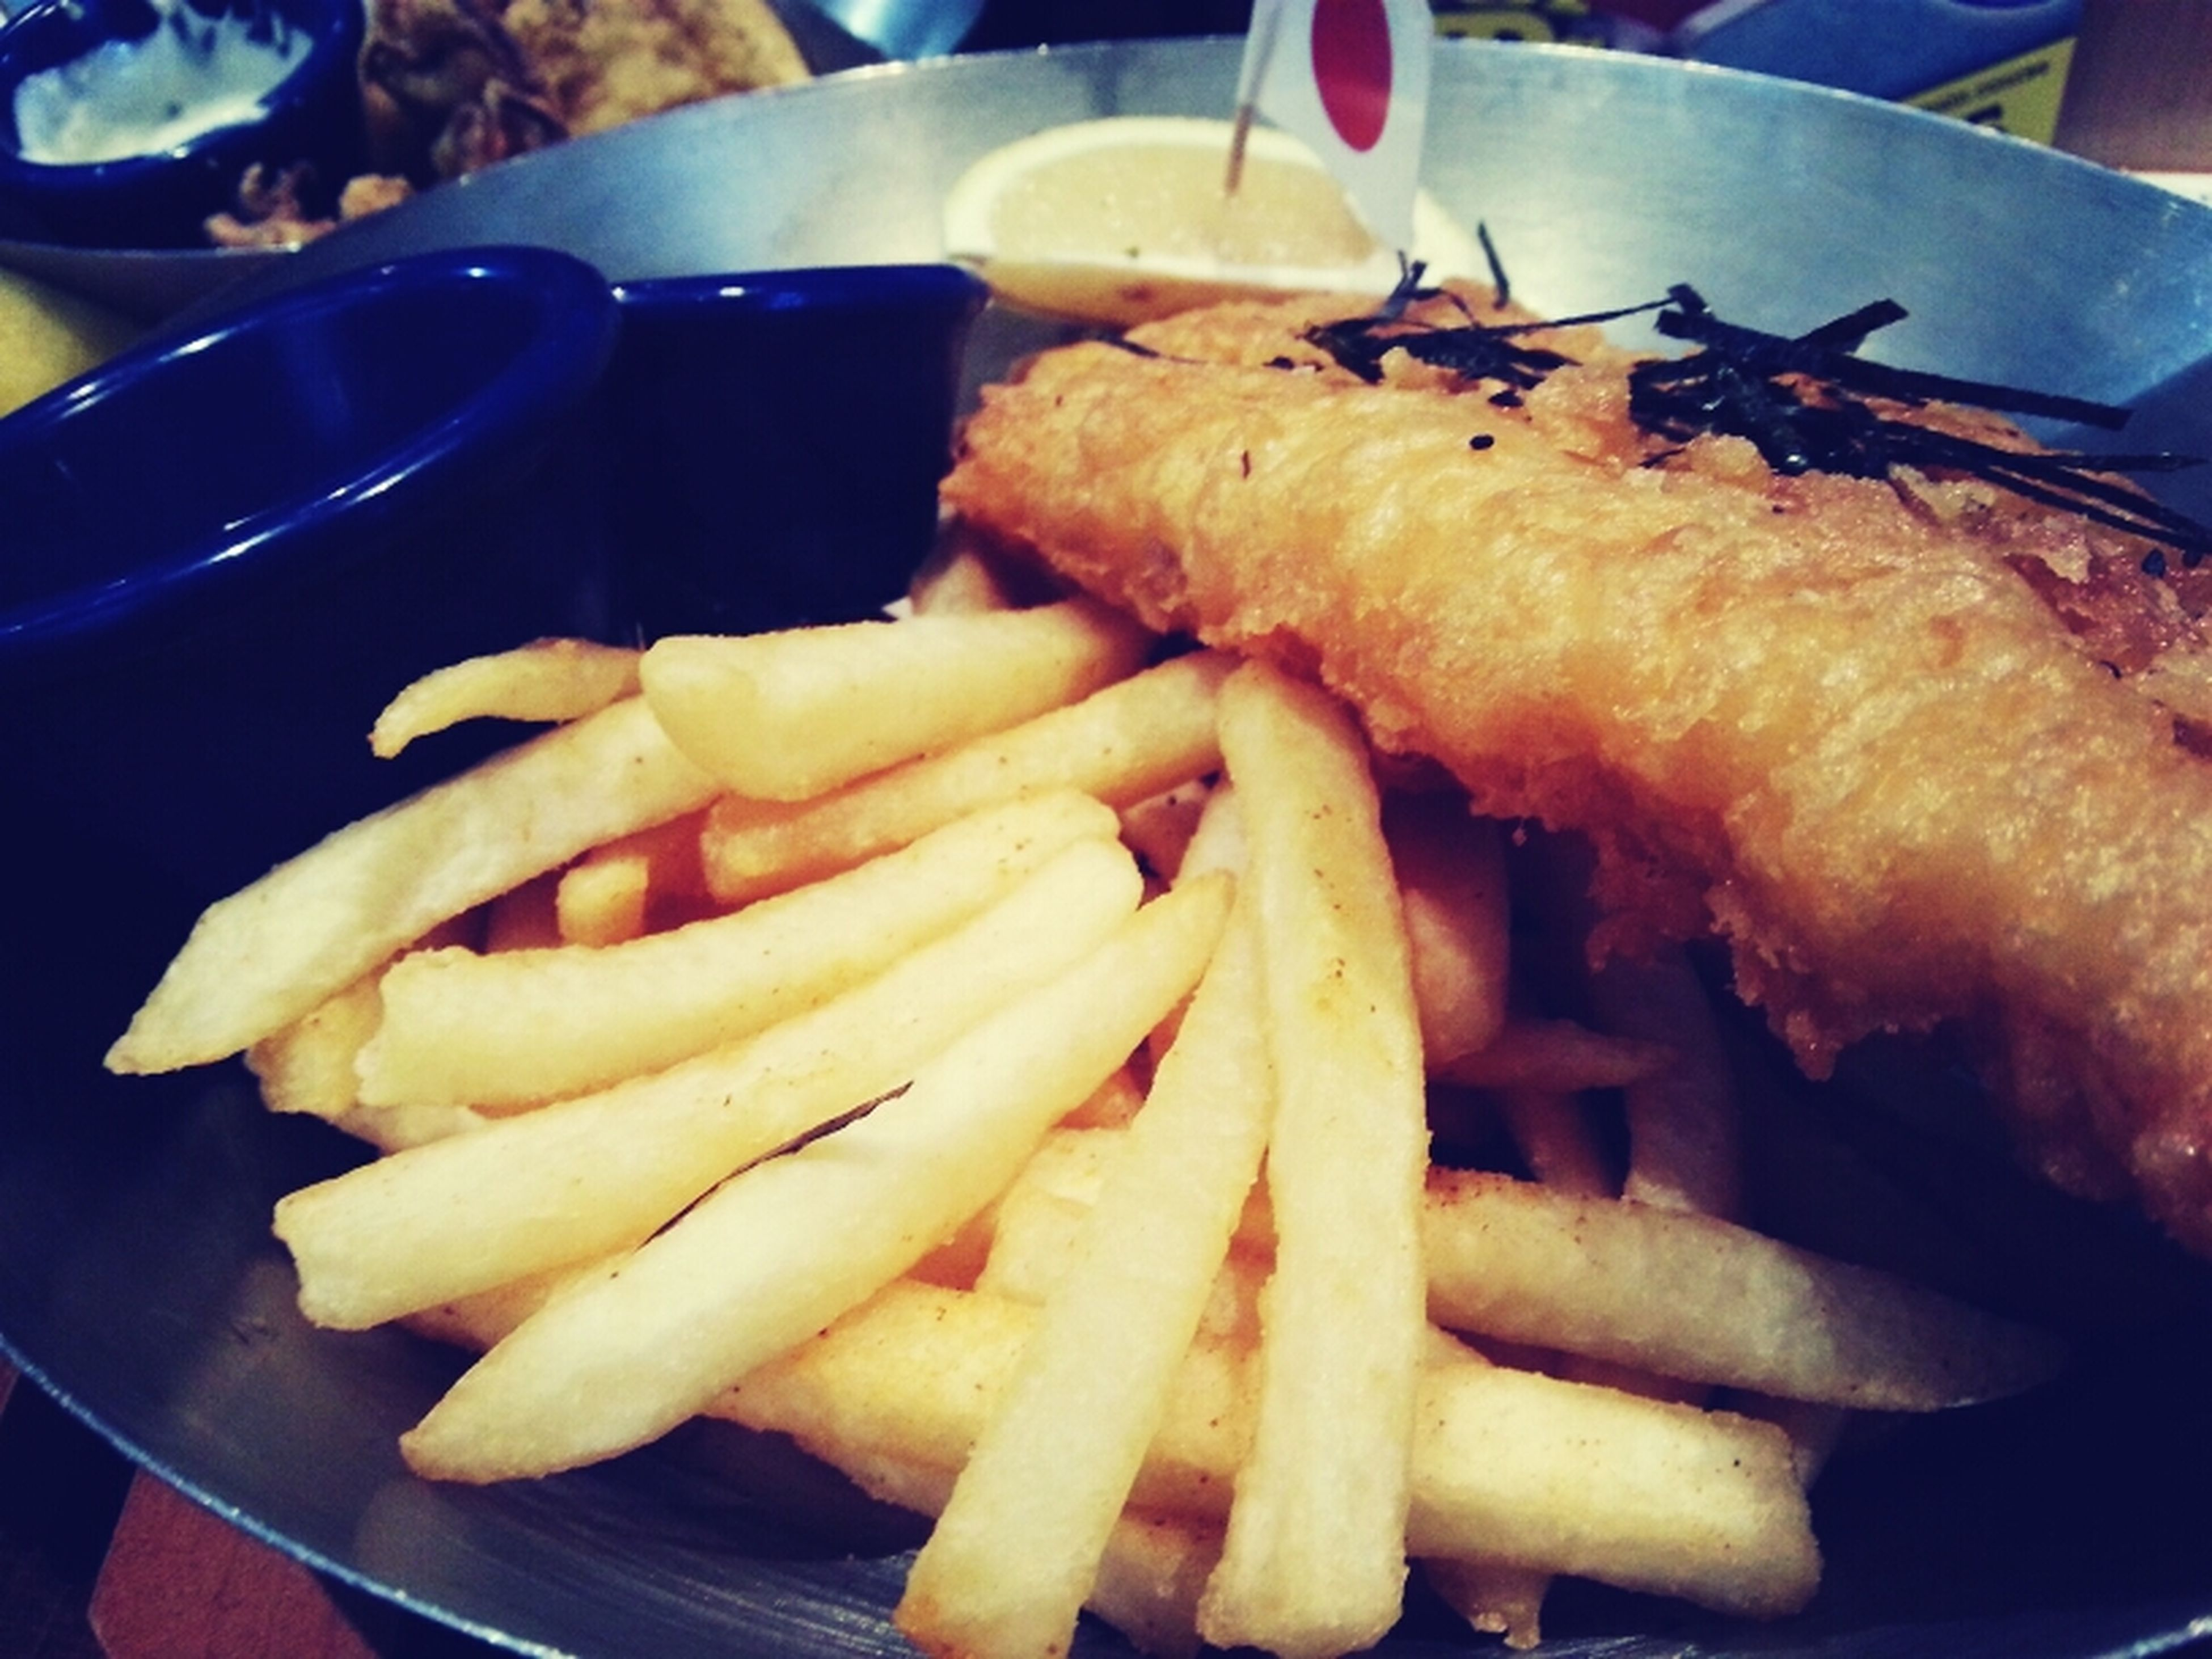 food and drink, food, freshness, ready-to-eat, indoors, french fries, plate, close-up, fast food, meat, still life, meal, deep fried, table, serving size, unhealthy eating, fried, prepared potato, indulgence, take out food